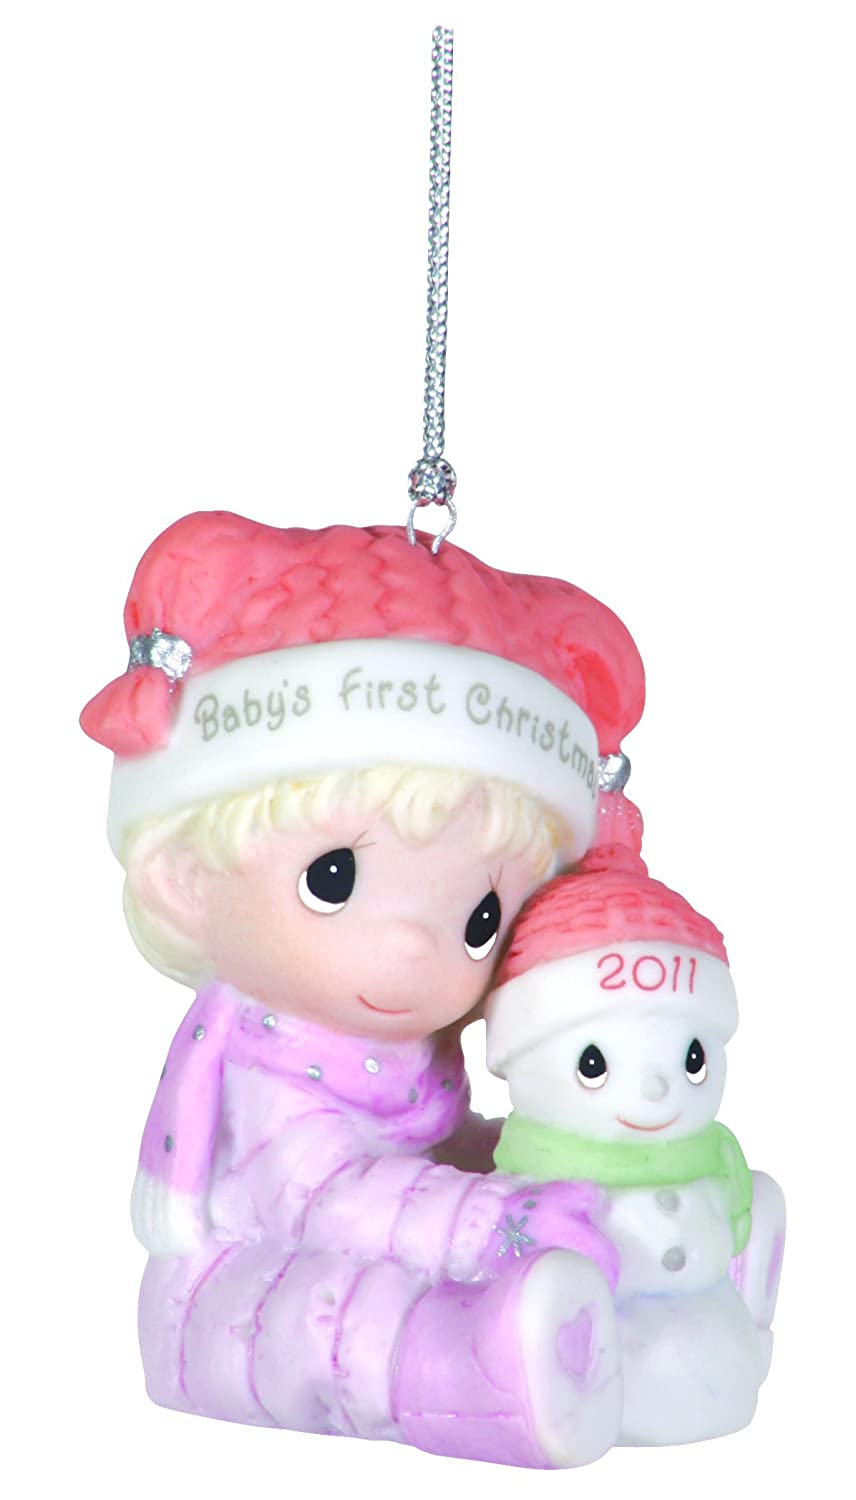 amazoncom precious moments 2011 dated ornament babys first christmas girl home kitchen